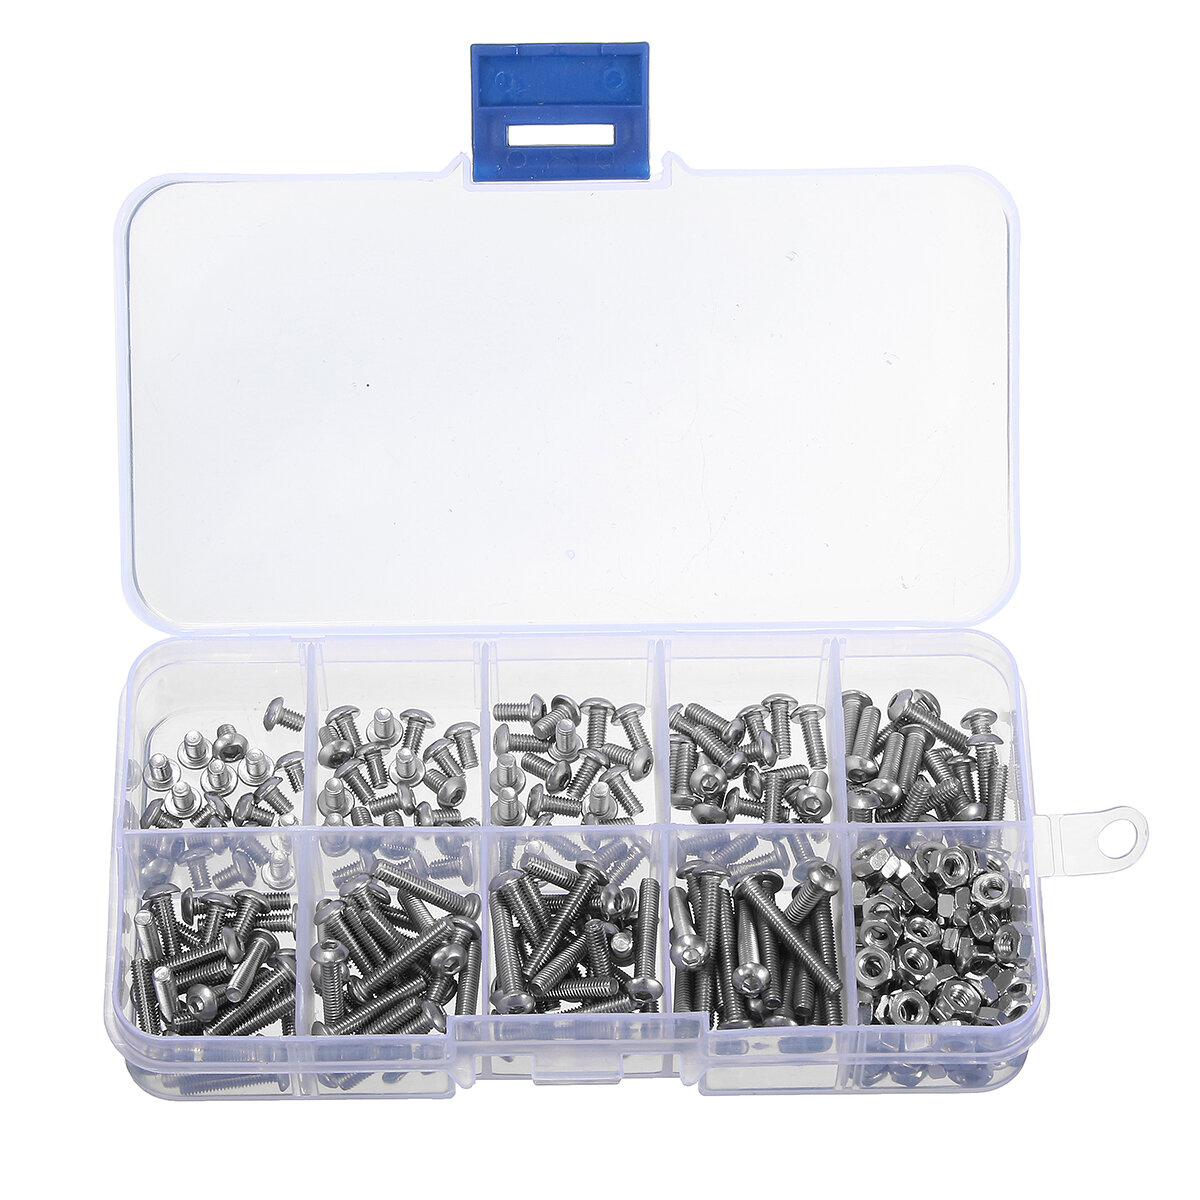 Suleve™ M3SS1 M3 Stainless Hex Socket Button Head Screws Allen bolt Nut  Assortment Kit 340pcs